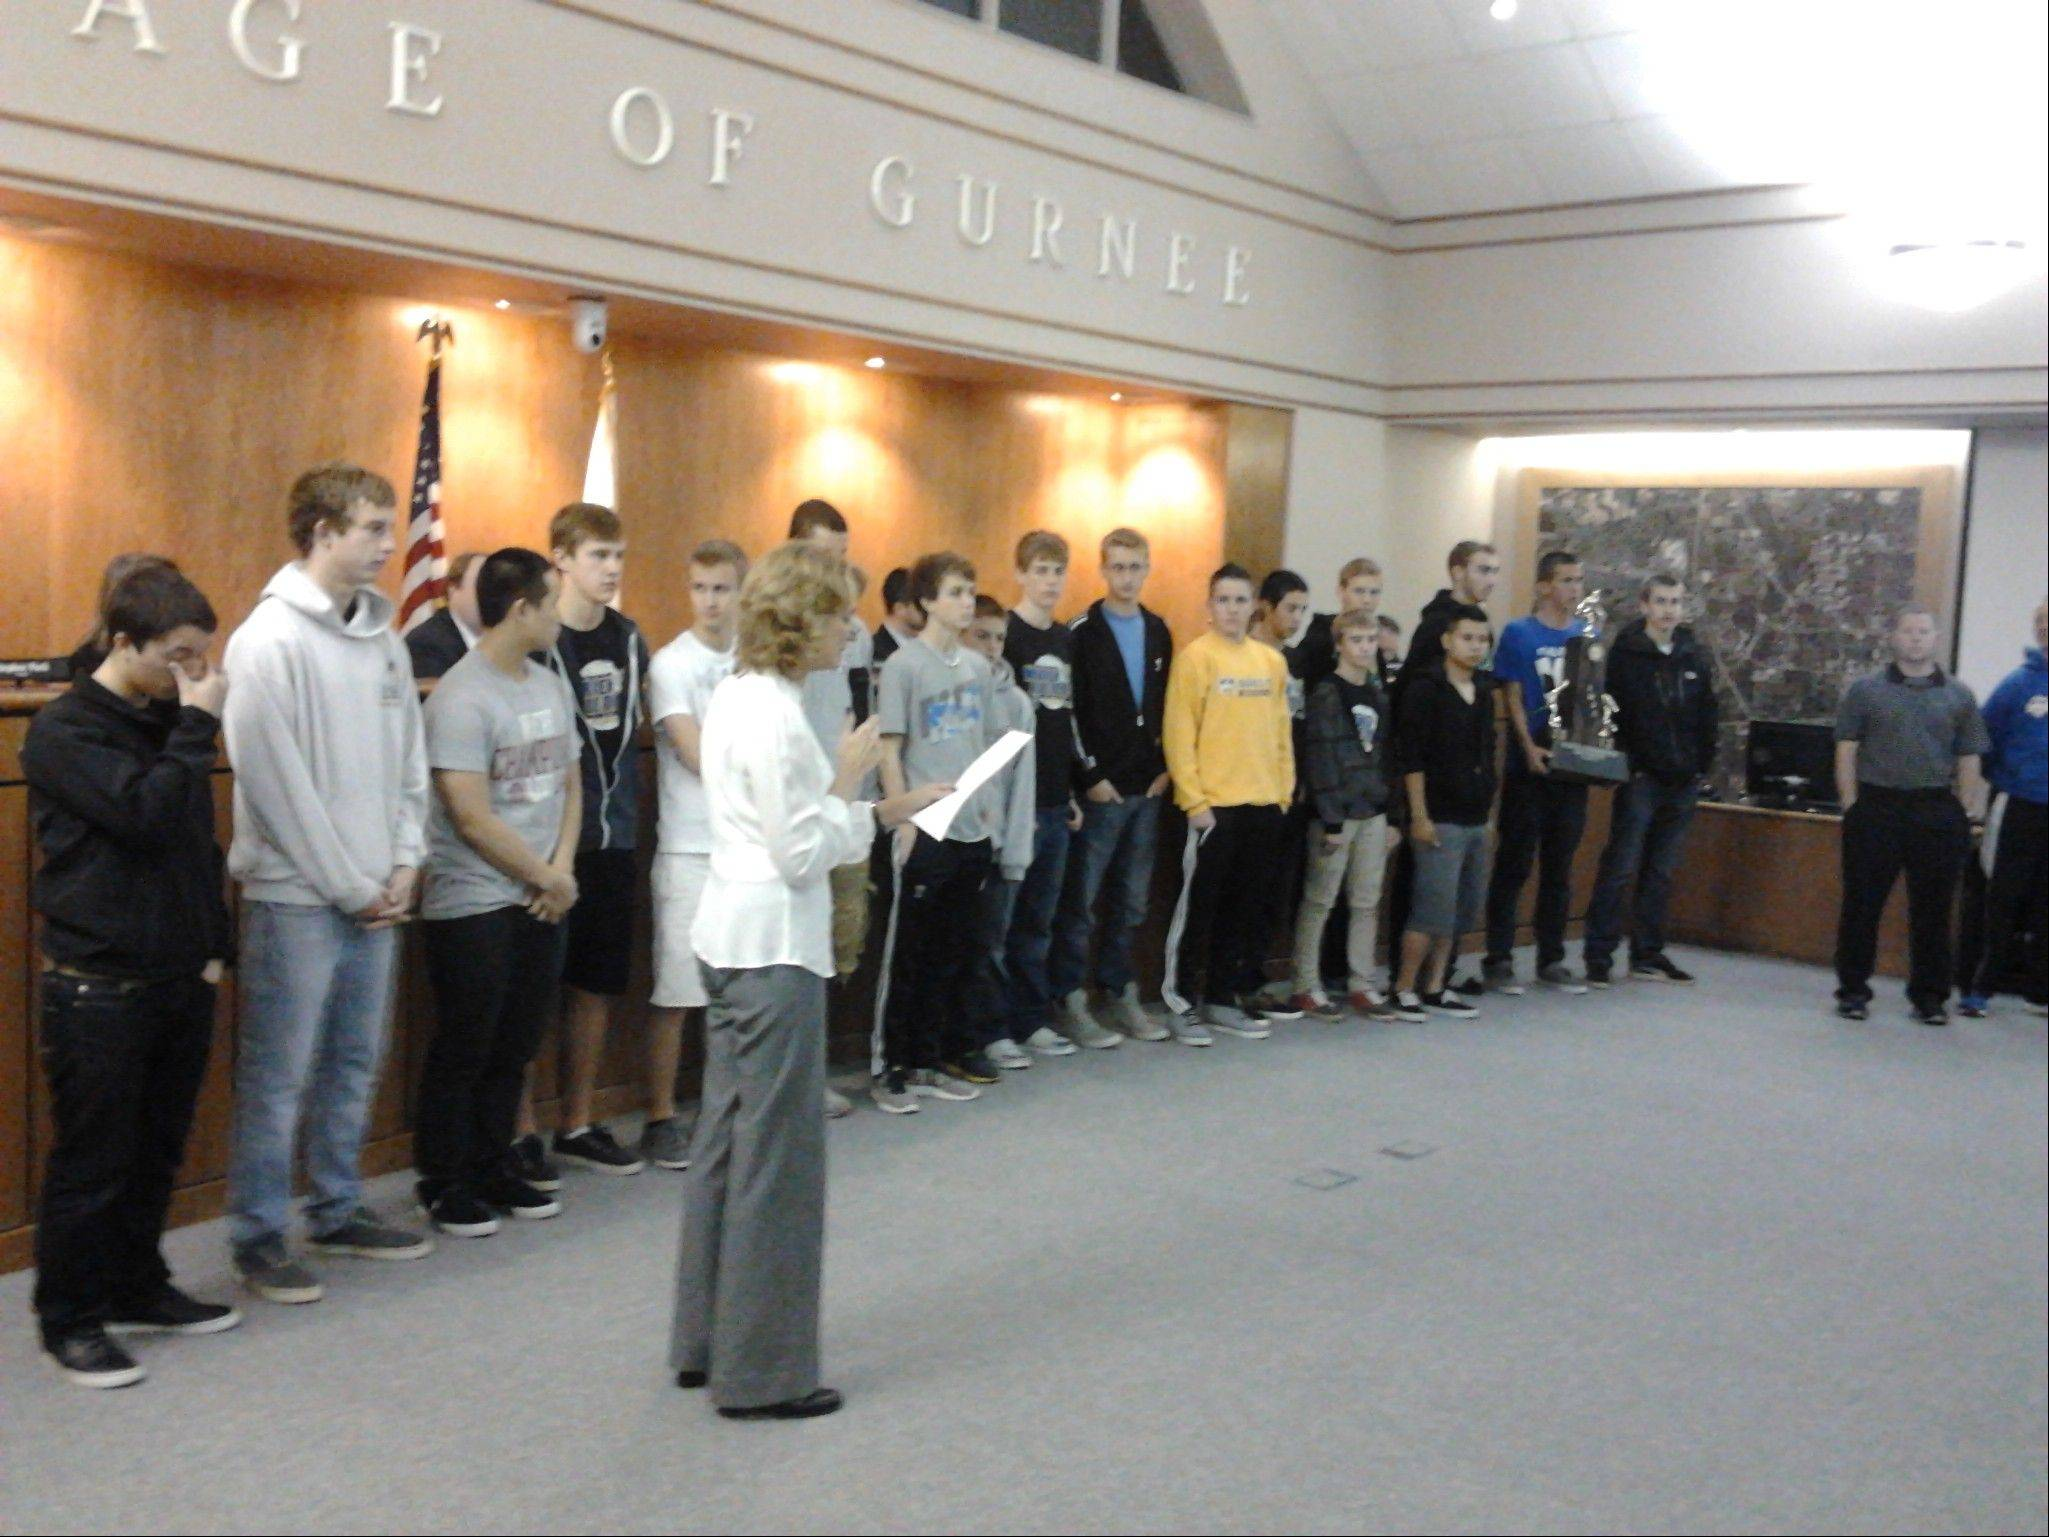 Gurnee Mayor Kristina Kovarik offered congratulations to Warren Township High School�s first state champion boys soccer team during a village board meeting Monday evening.